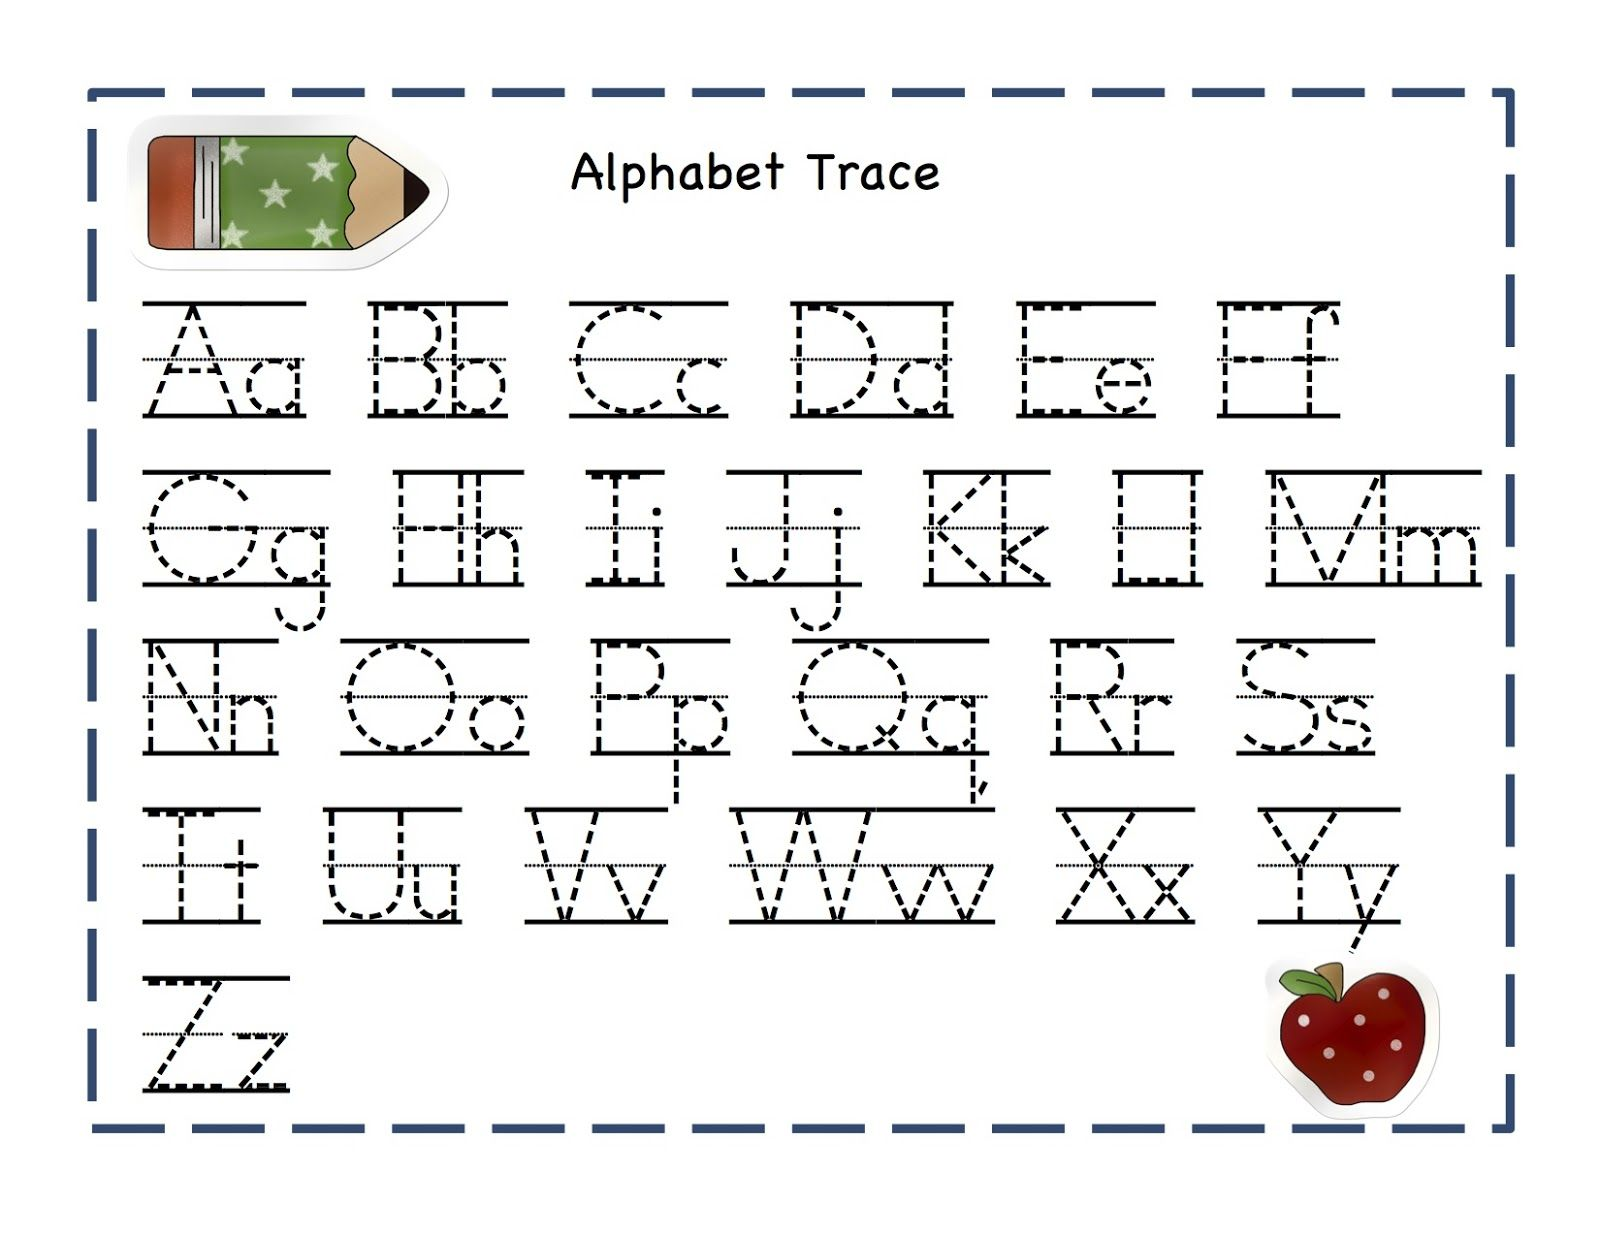 worksheet Alphabet Worksheets For Preschool alphabet worksheets for preschoolers preschool printables apple tracing fun